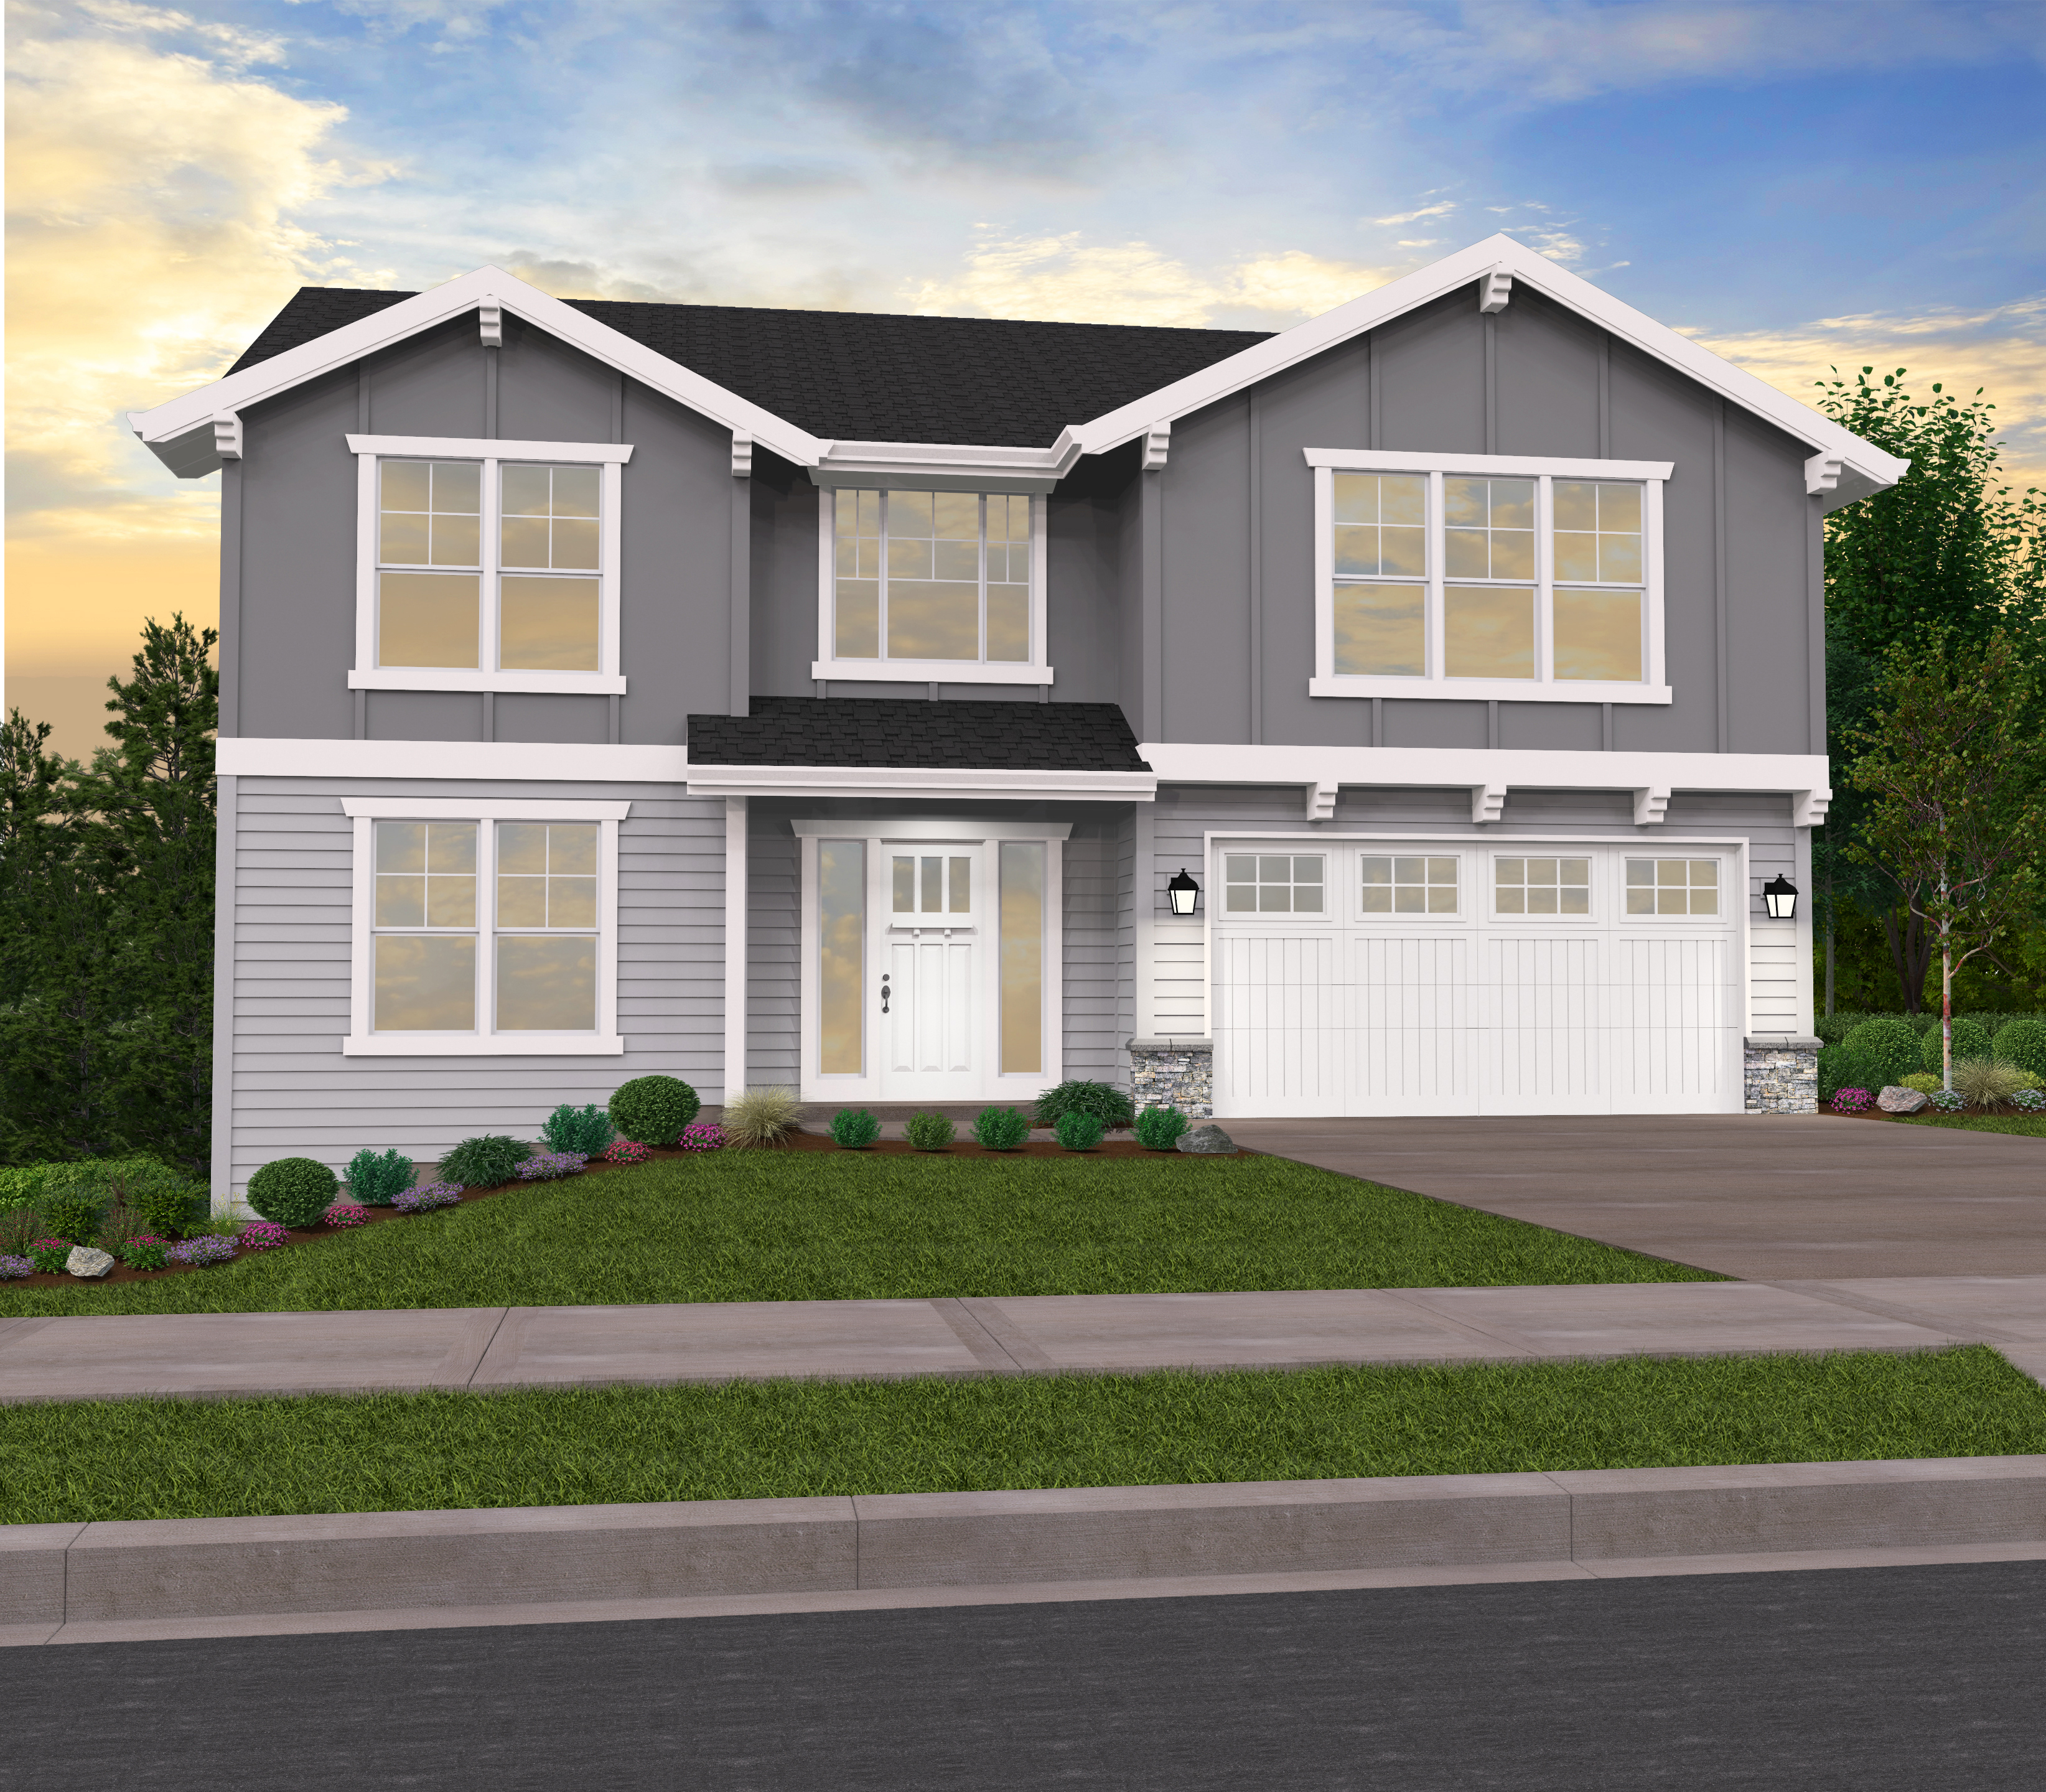 Mark Stewart Home Design: Three Story House Plan By Mark Stewart Home Design